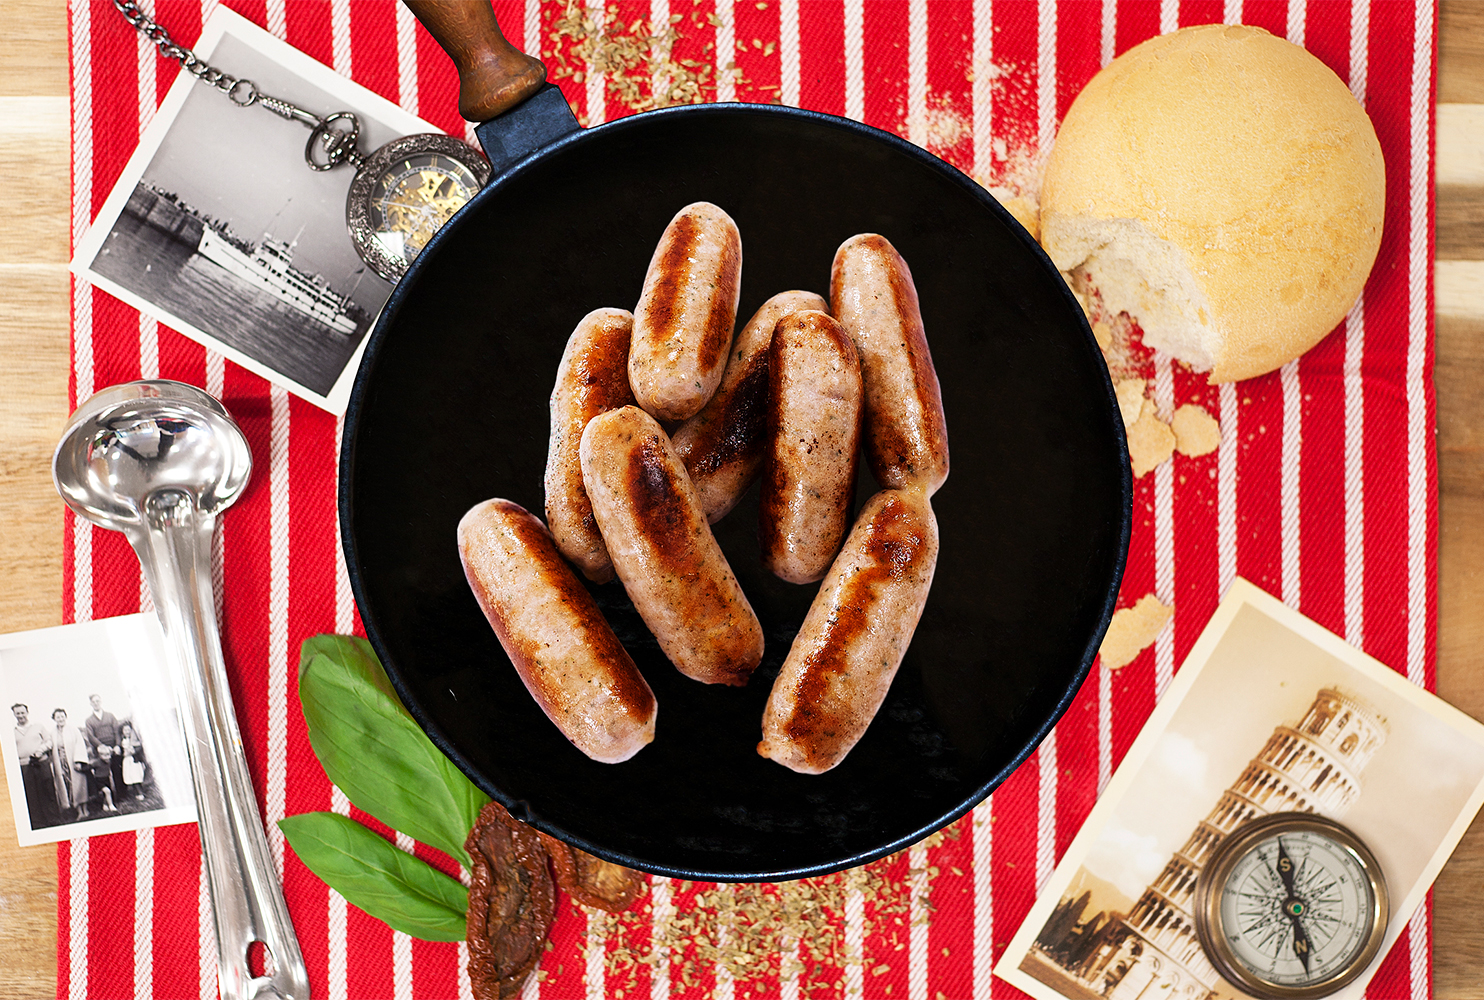 SIX NATIONS ITALIAN SAUSAGE MIX